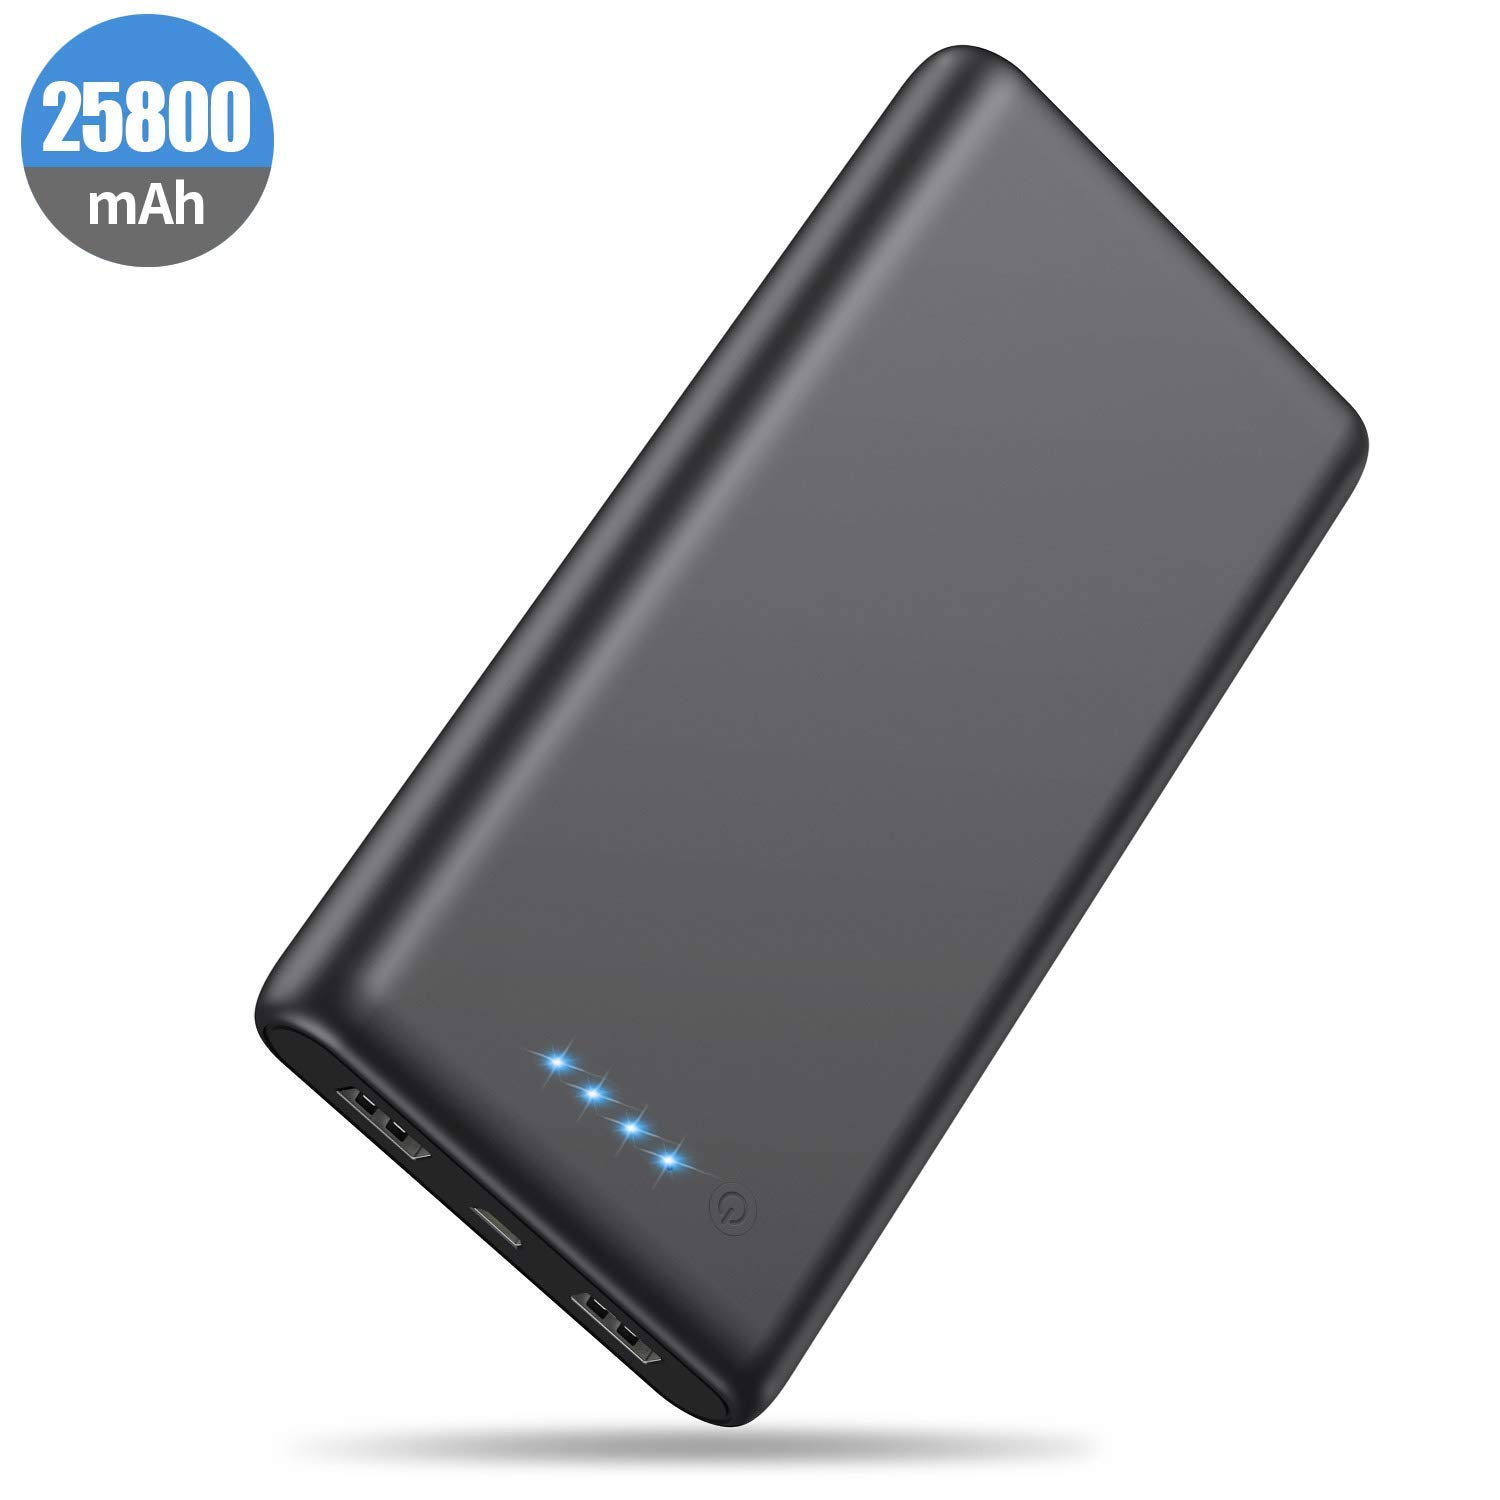 Portable Charger Power Bank 25800mah Classic Portable Phone Charger High-Capacity Battery Pack Dual Output with 4 LED Indicators Charging External Battery Charger for Smartphone,Android,Tablet etc by Xooparc